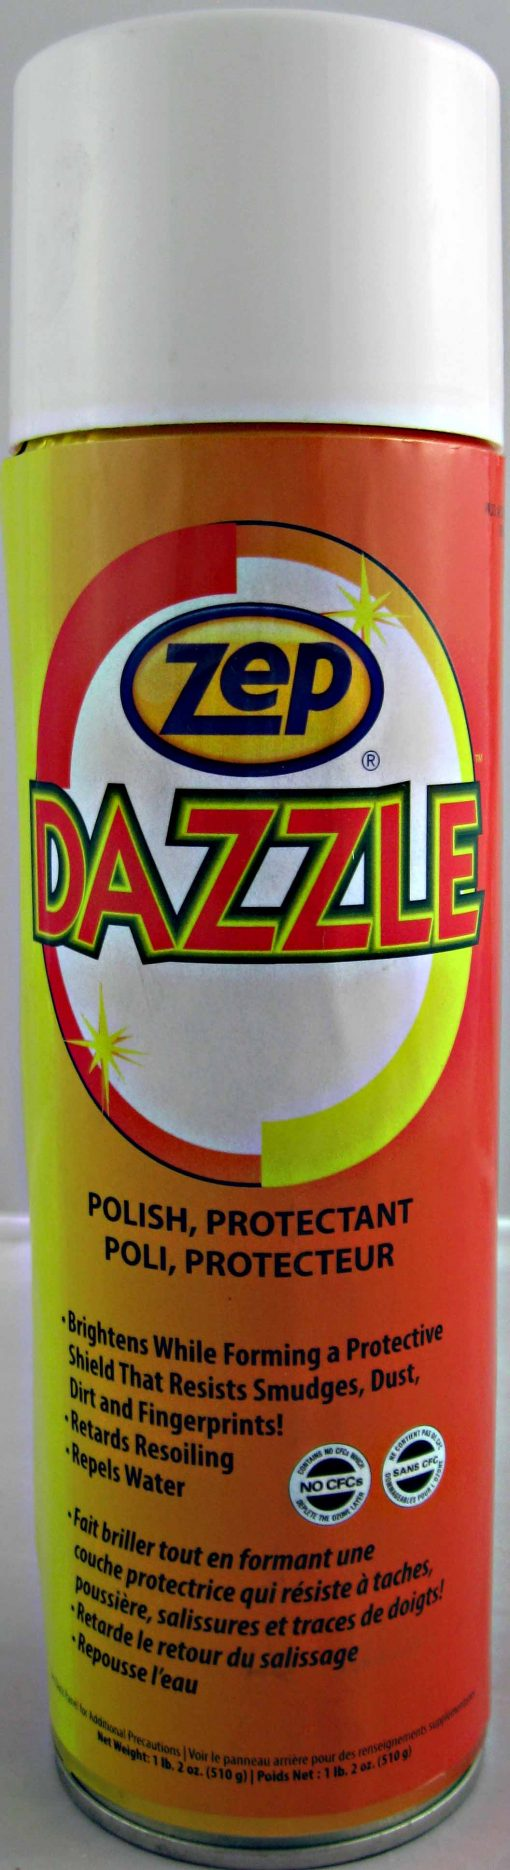 Zep Dazzle hard surface cleaner and polisher.